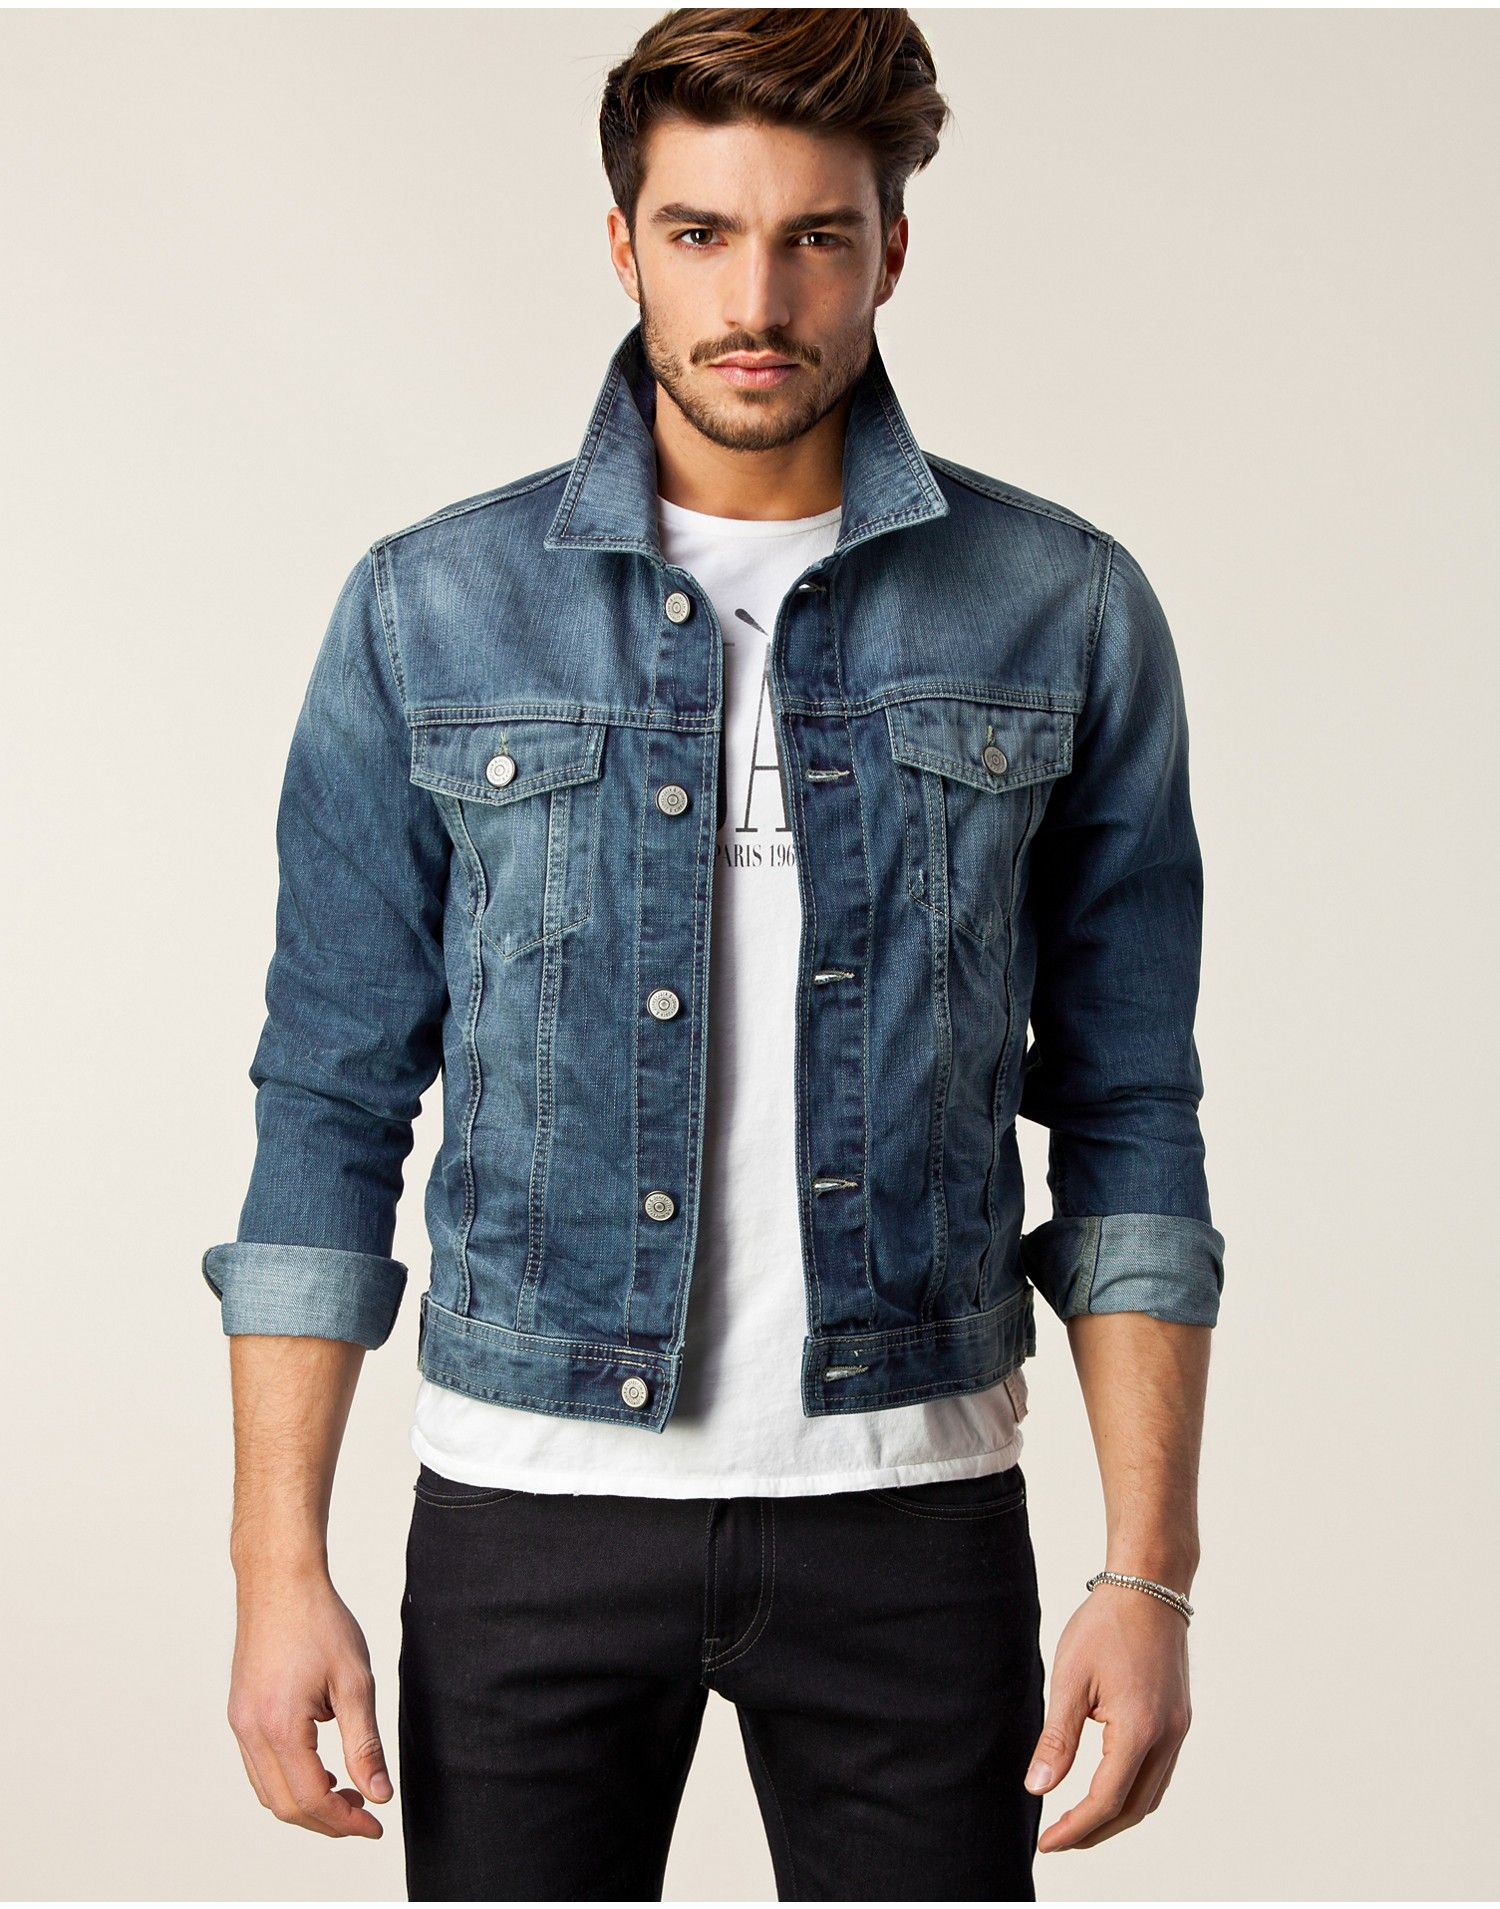 Denim Jacket For Guys